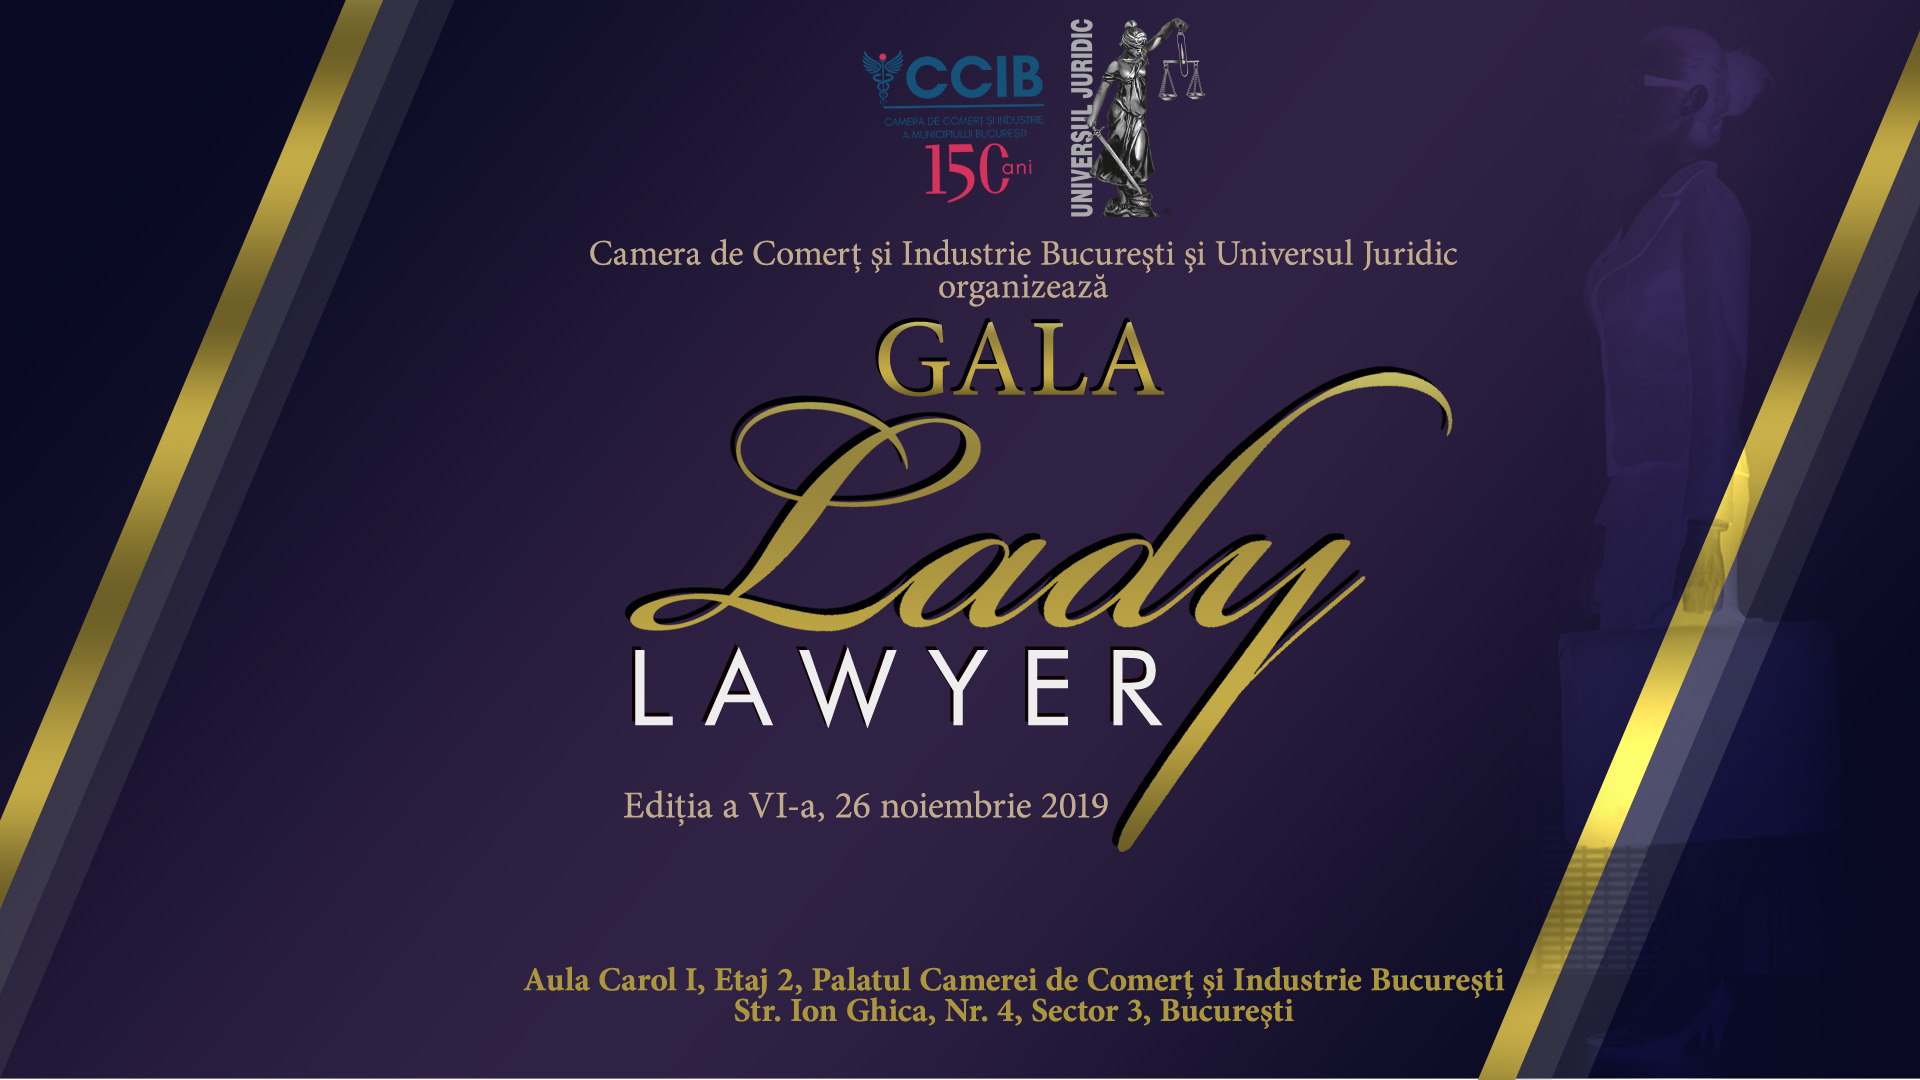 GALA LADY LAWYER, ediția a VI-a